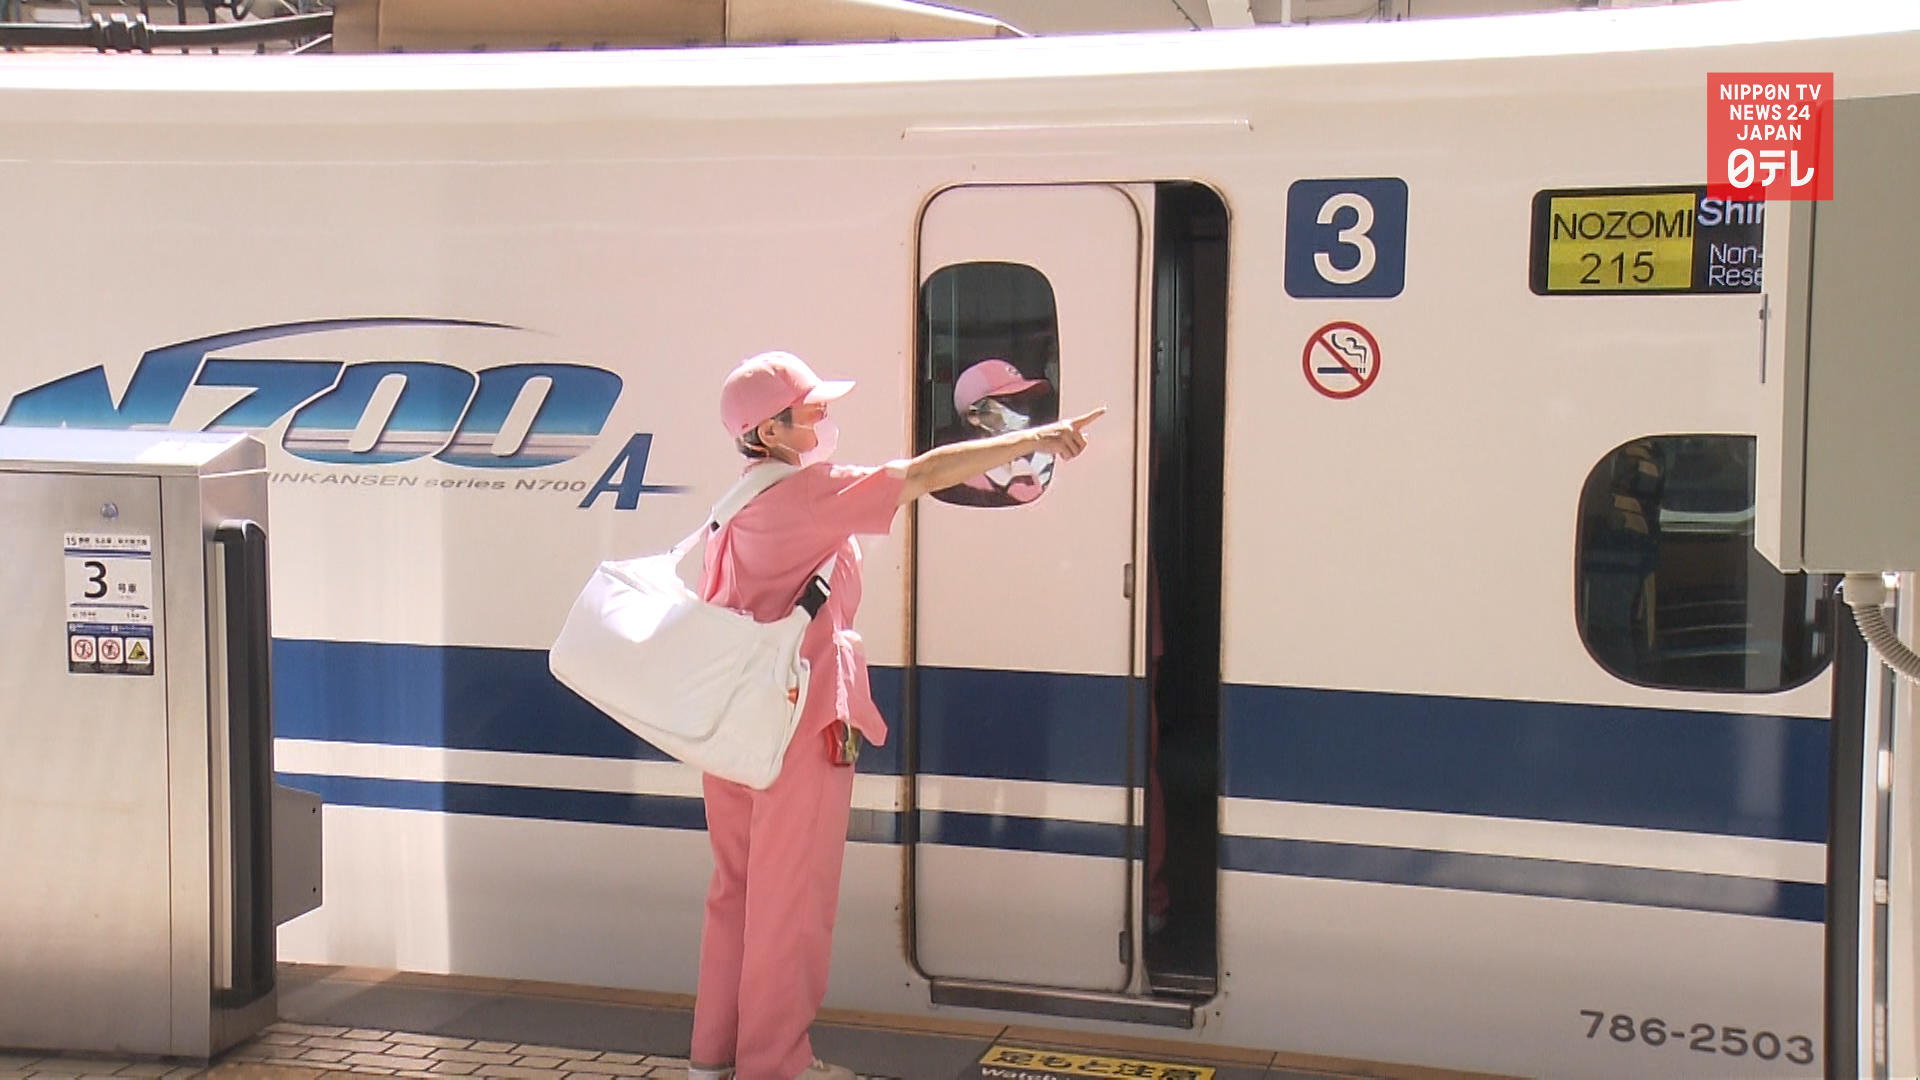 Central Japan Railway increases number of bullet trains per hour